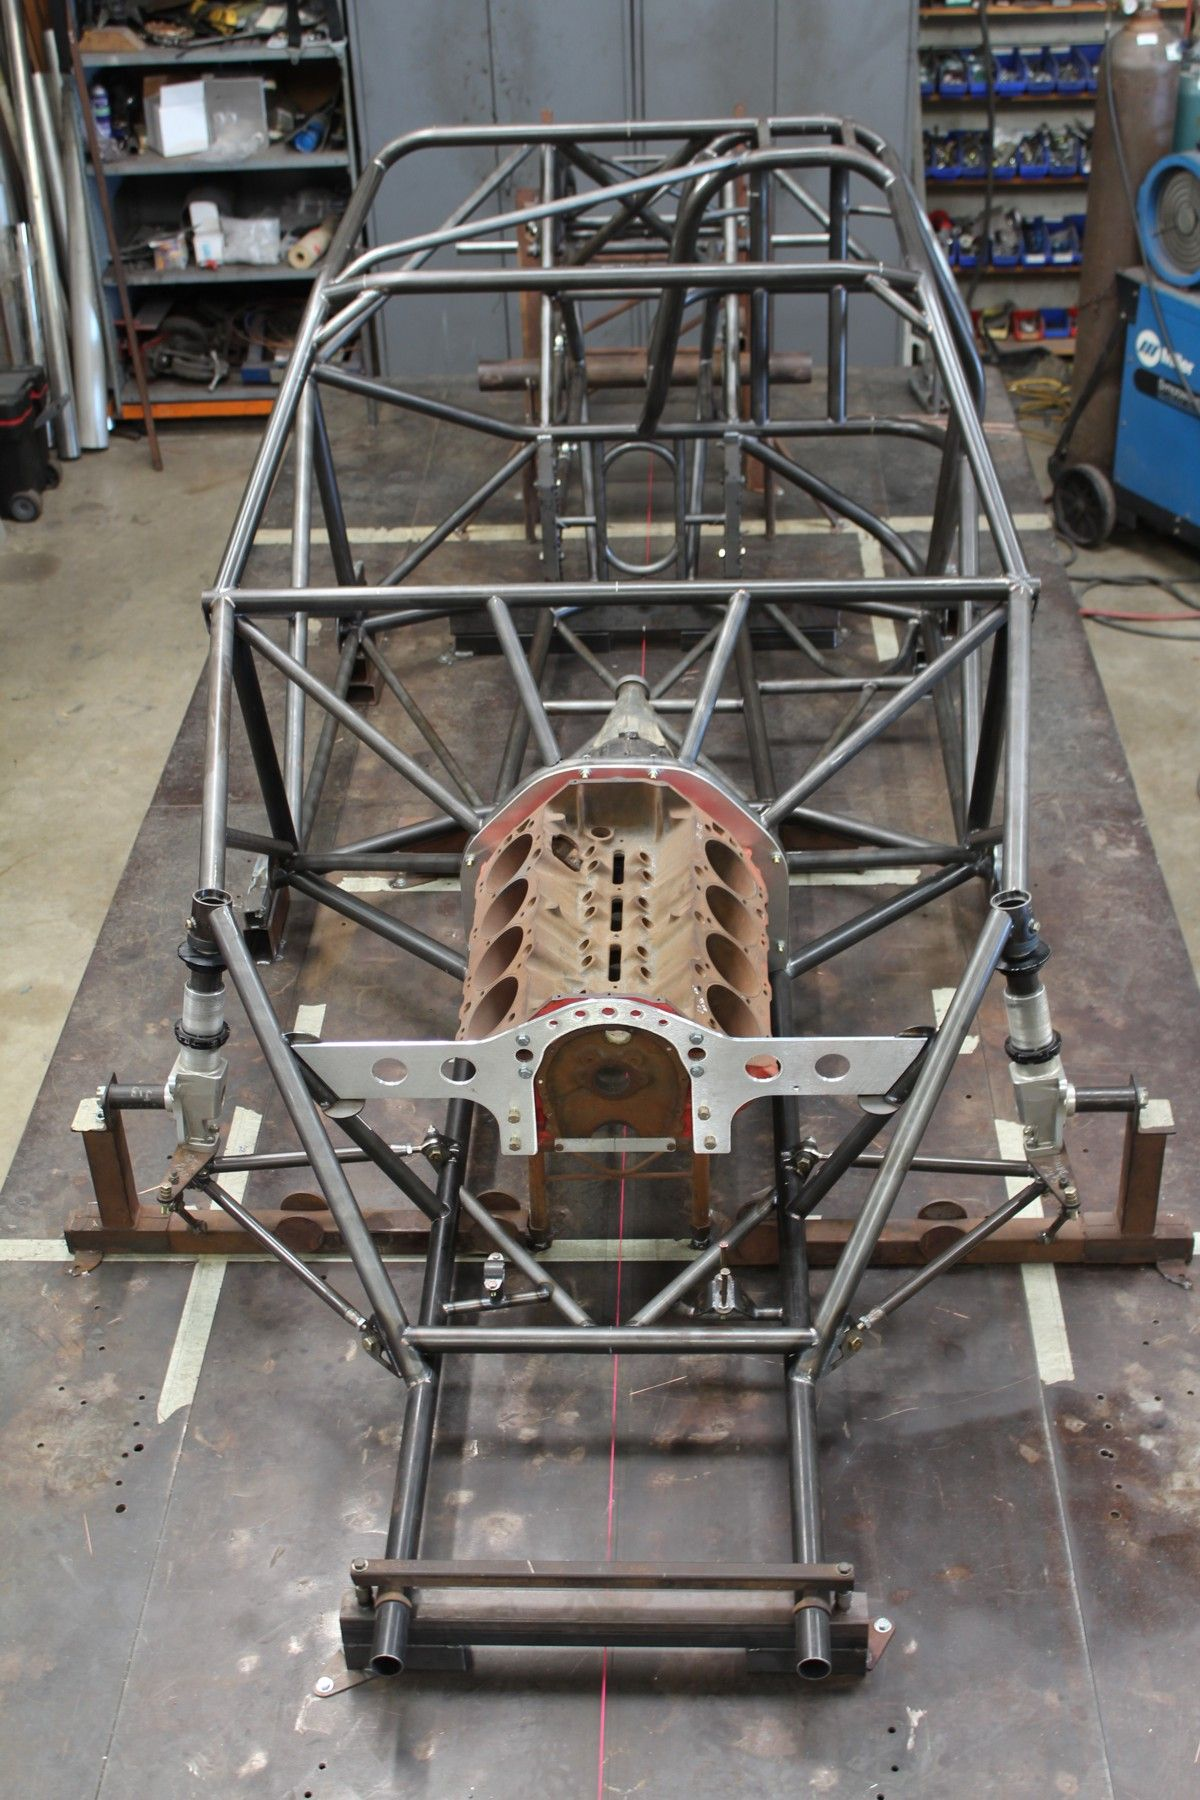 Chassis Front on Table | Cars and motorcycles | Tube chassis